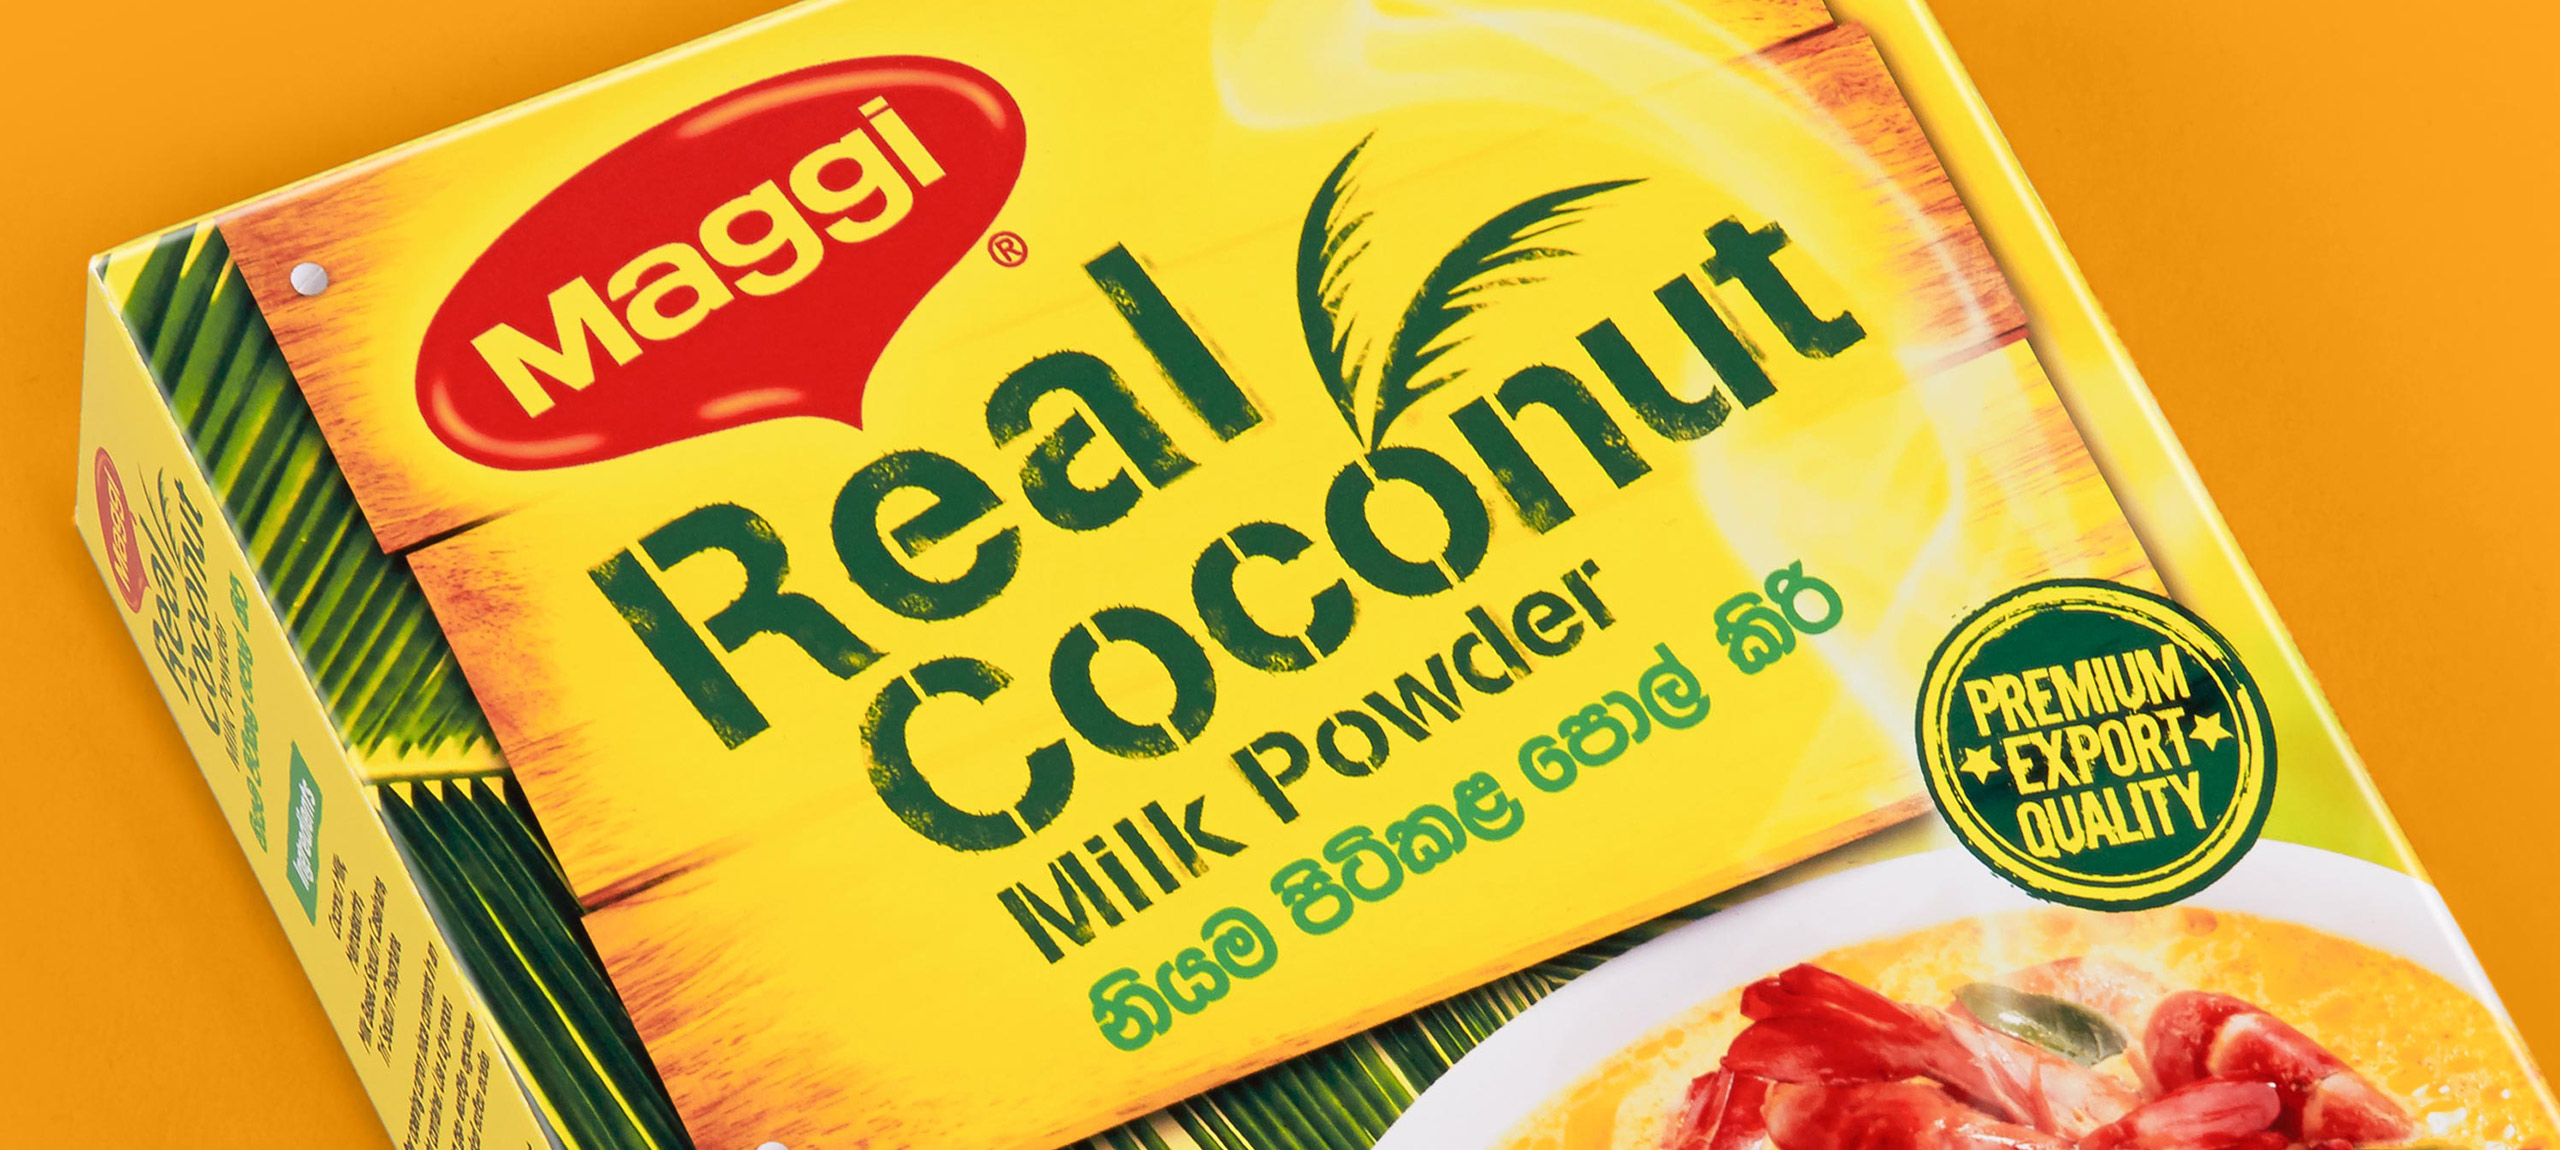 Maggi Real Coconut Packaging Banner